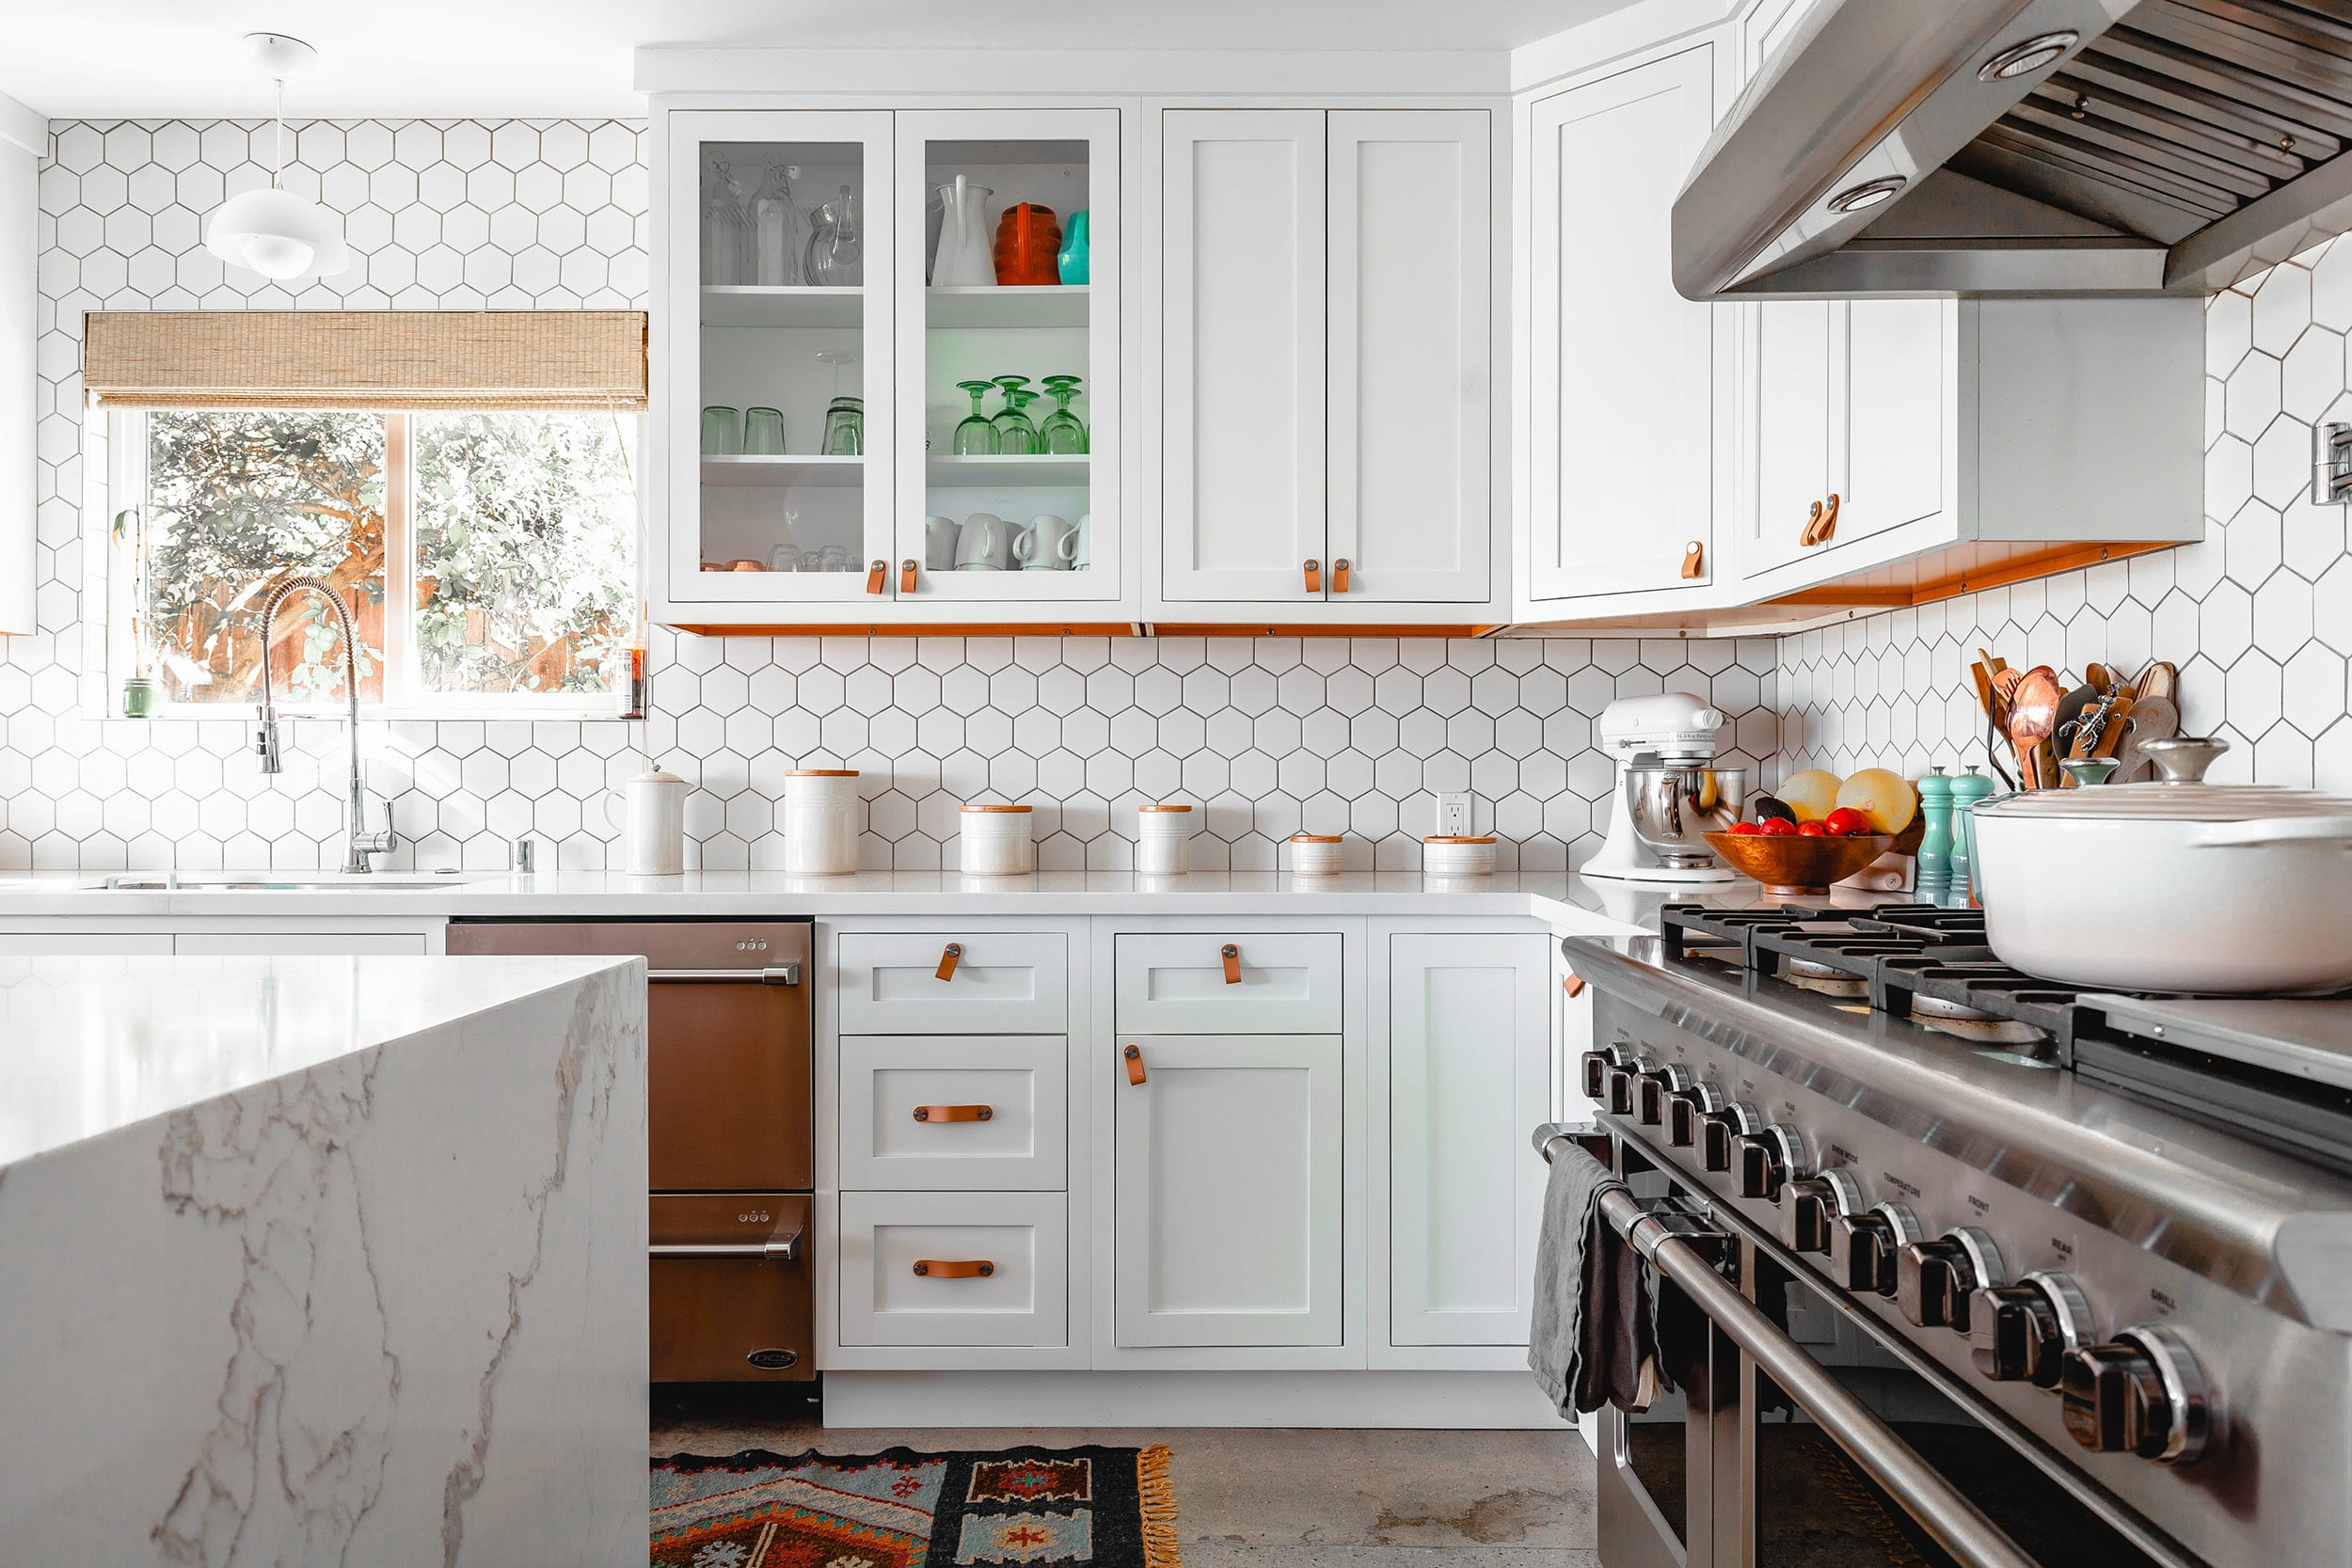 Tips to organise your kitchen